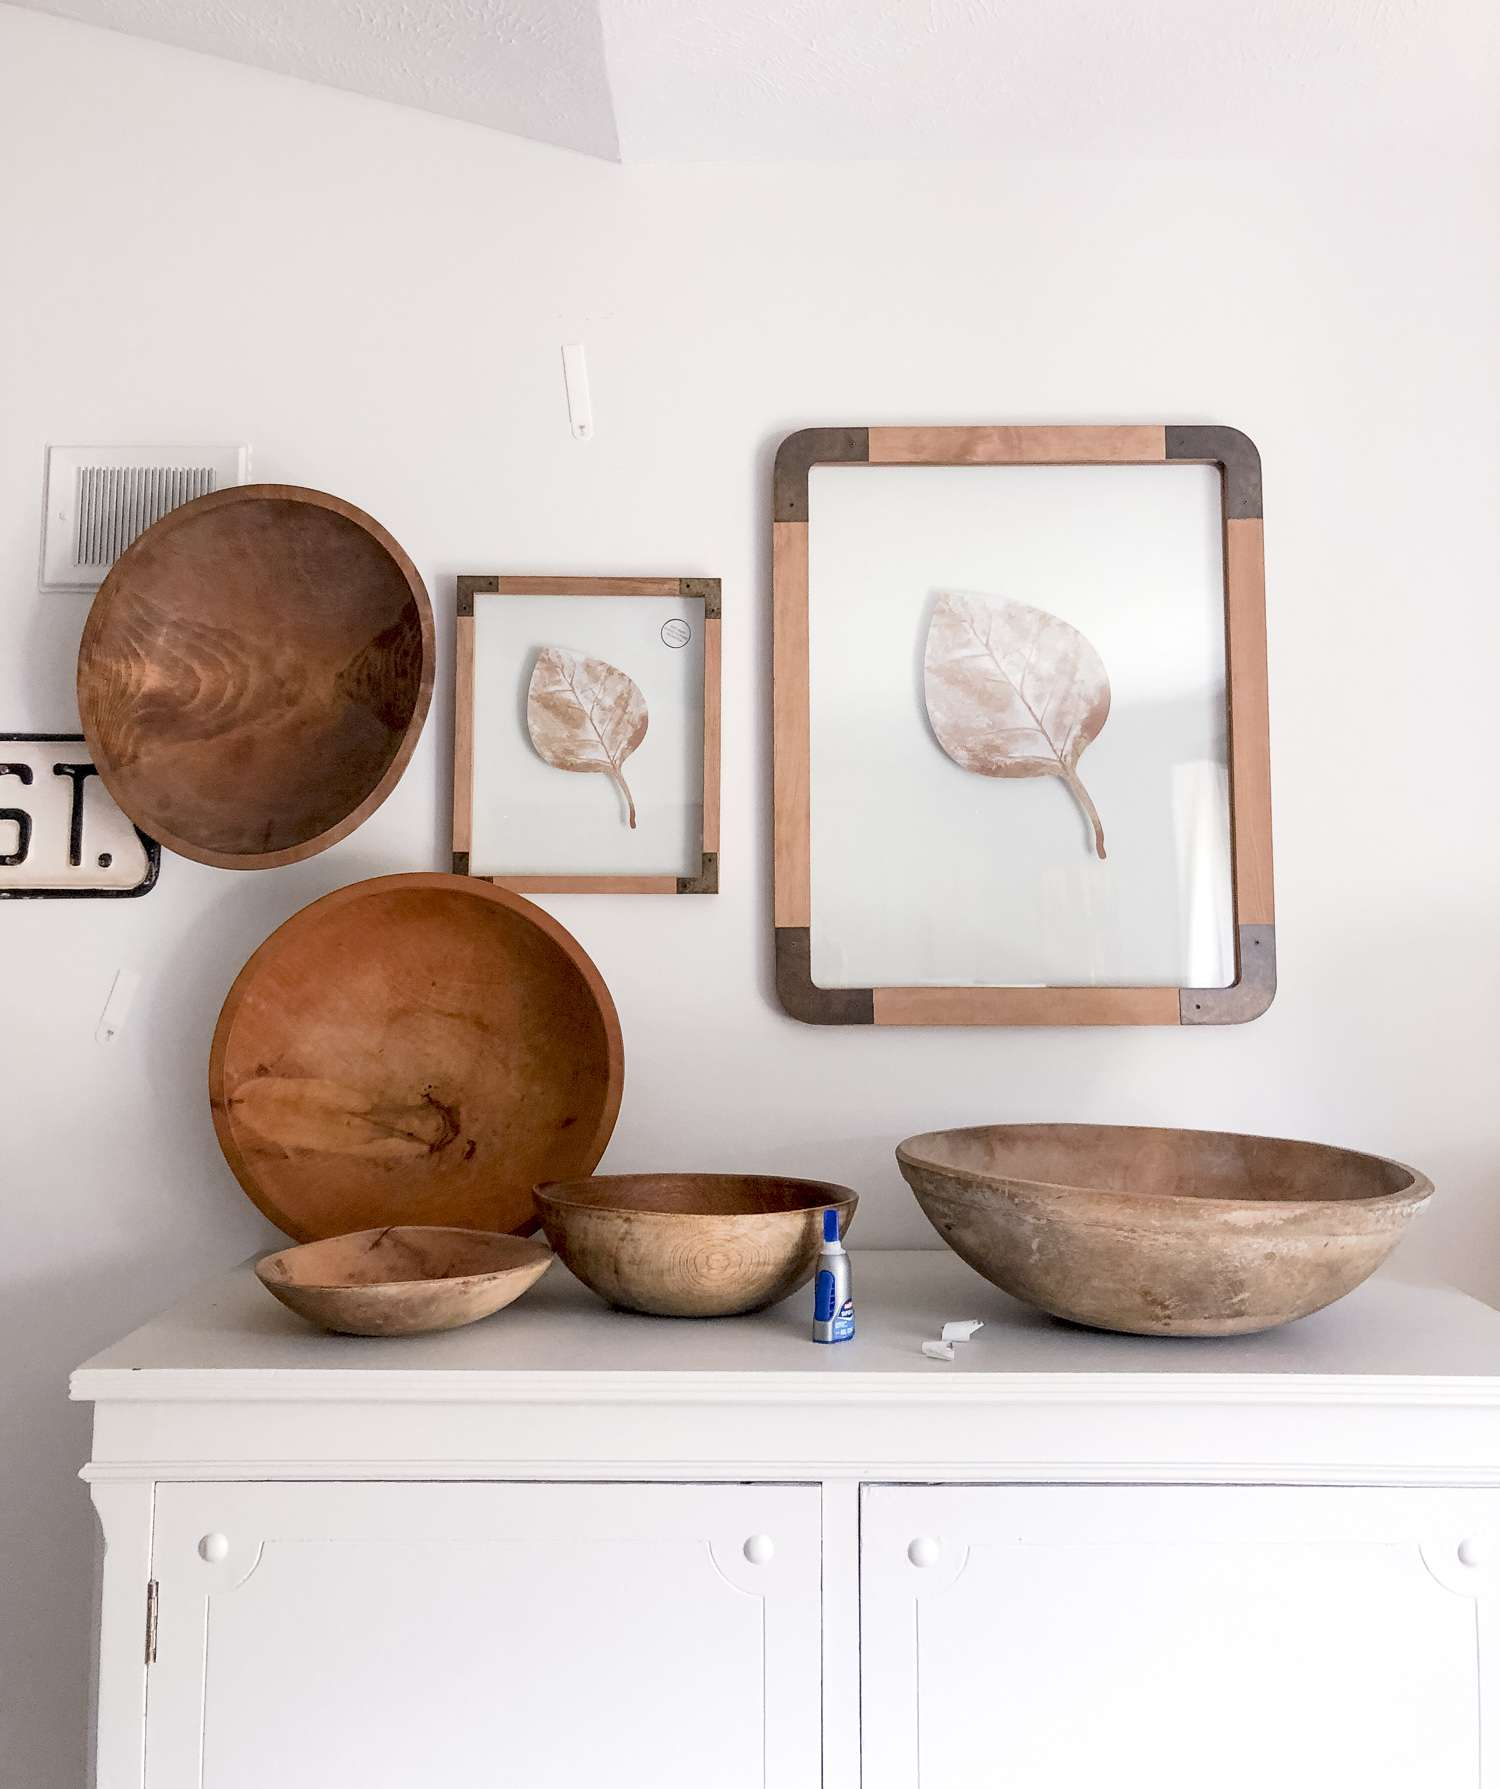 How to hang vintage wooden bowls.